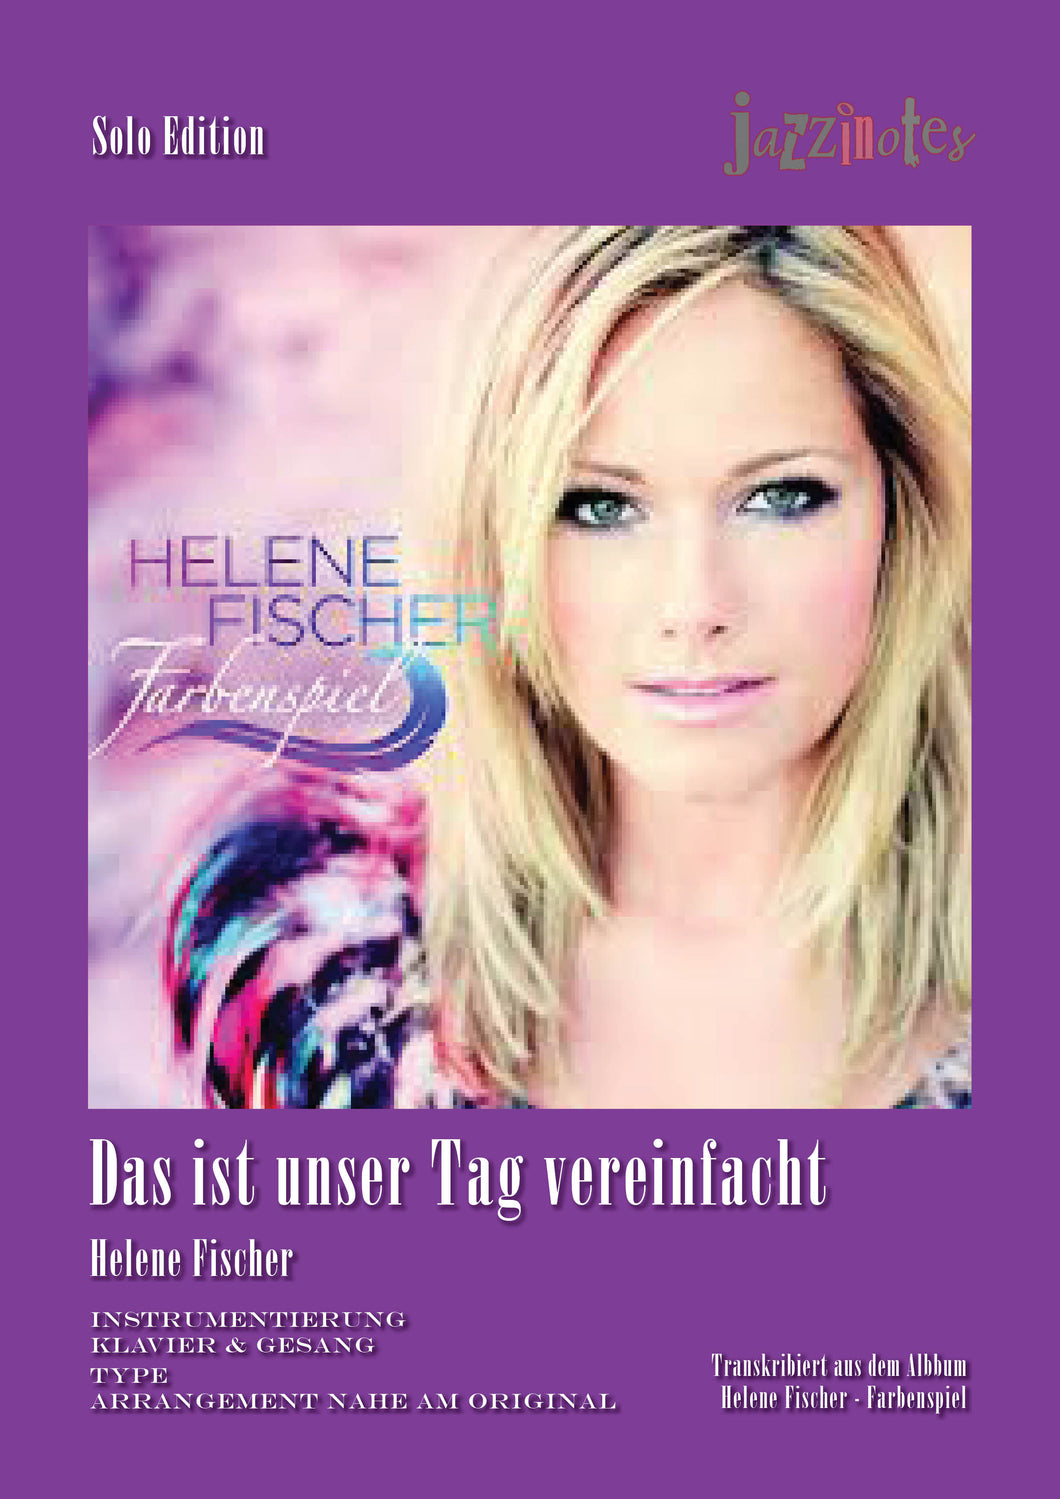 Fischer, Helene: Das ist unser Tag (Simplified Version) - Sheet Music Download